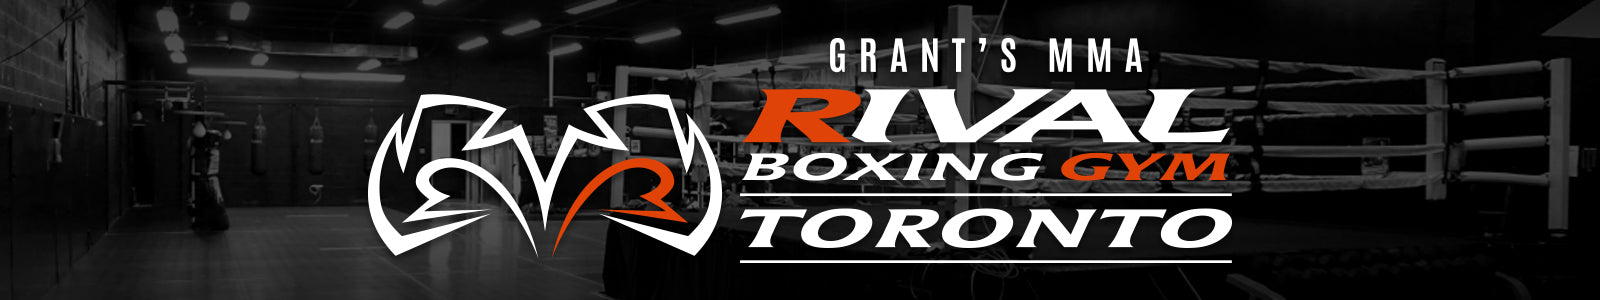 rival-boxing-gym-grants-mma-toronto